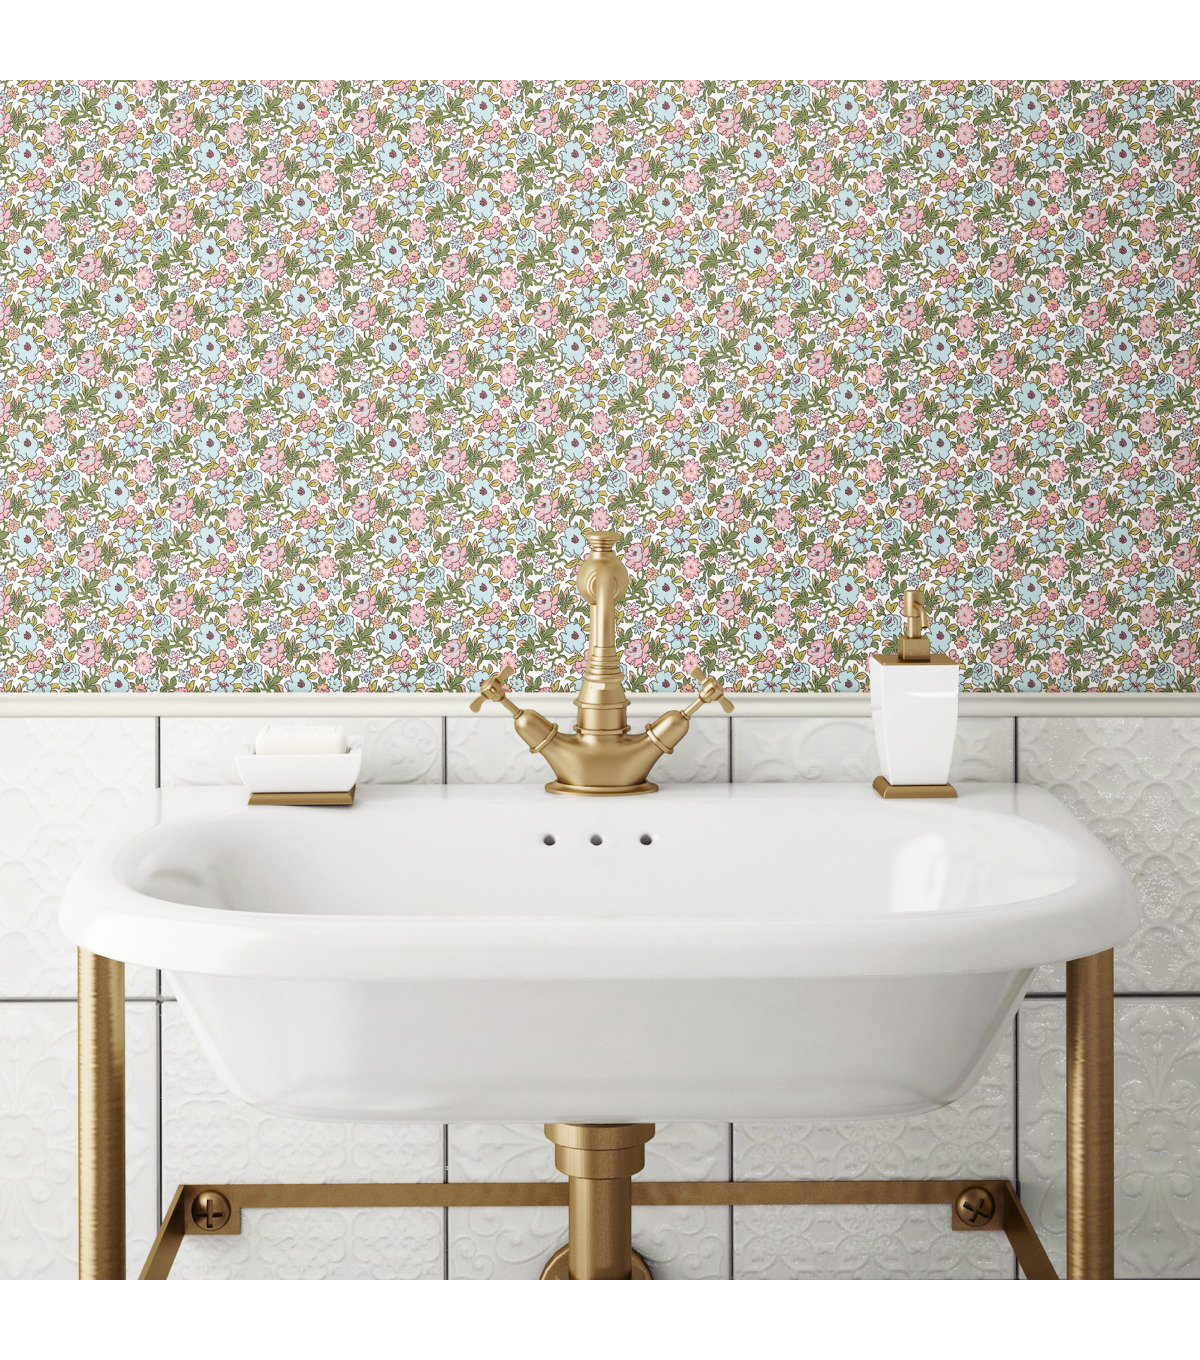 York Wallcoverings Wallpaper-Pink Ditzy Floral Vine